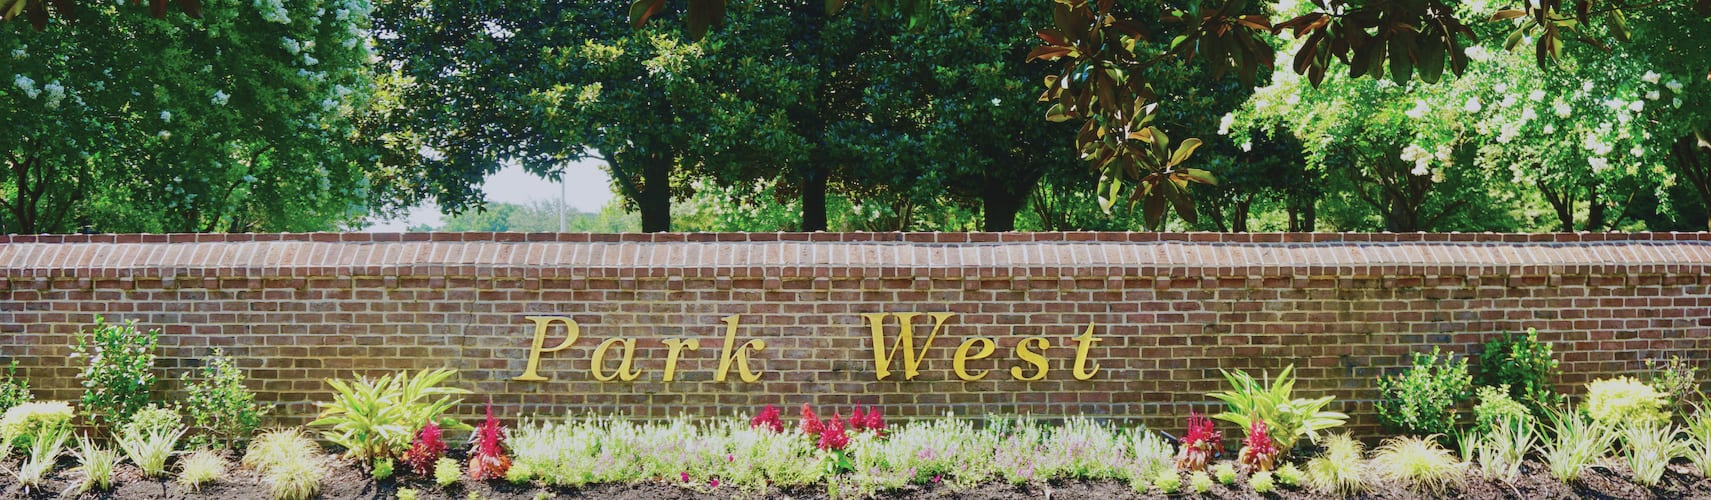 Park West brick sign